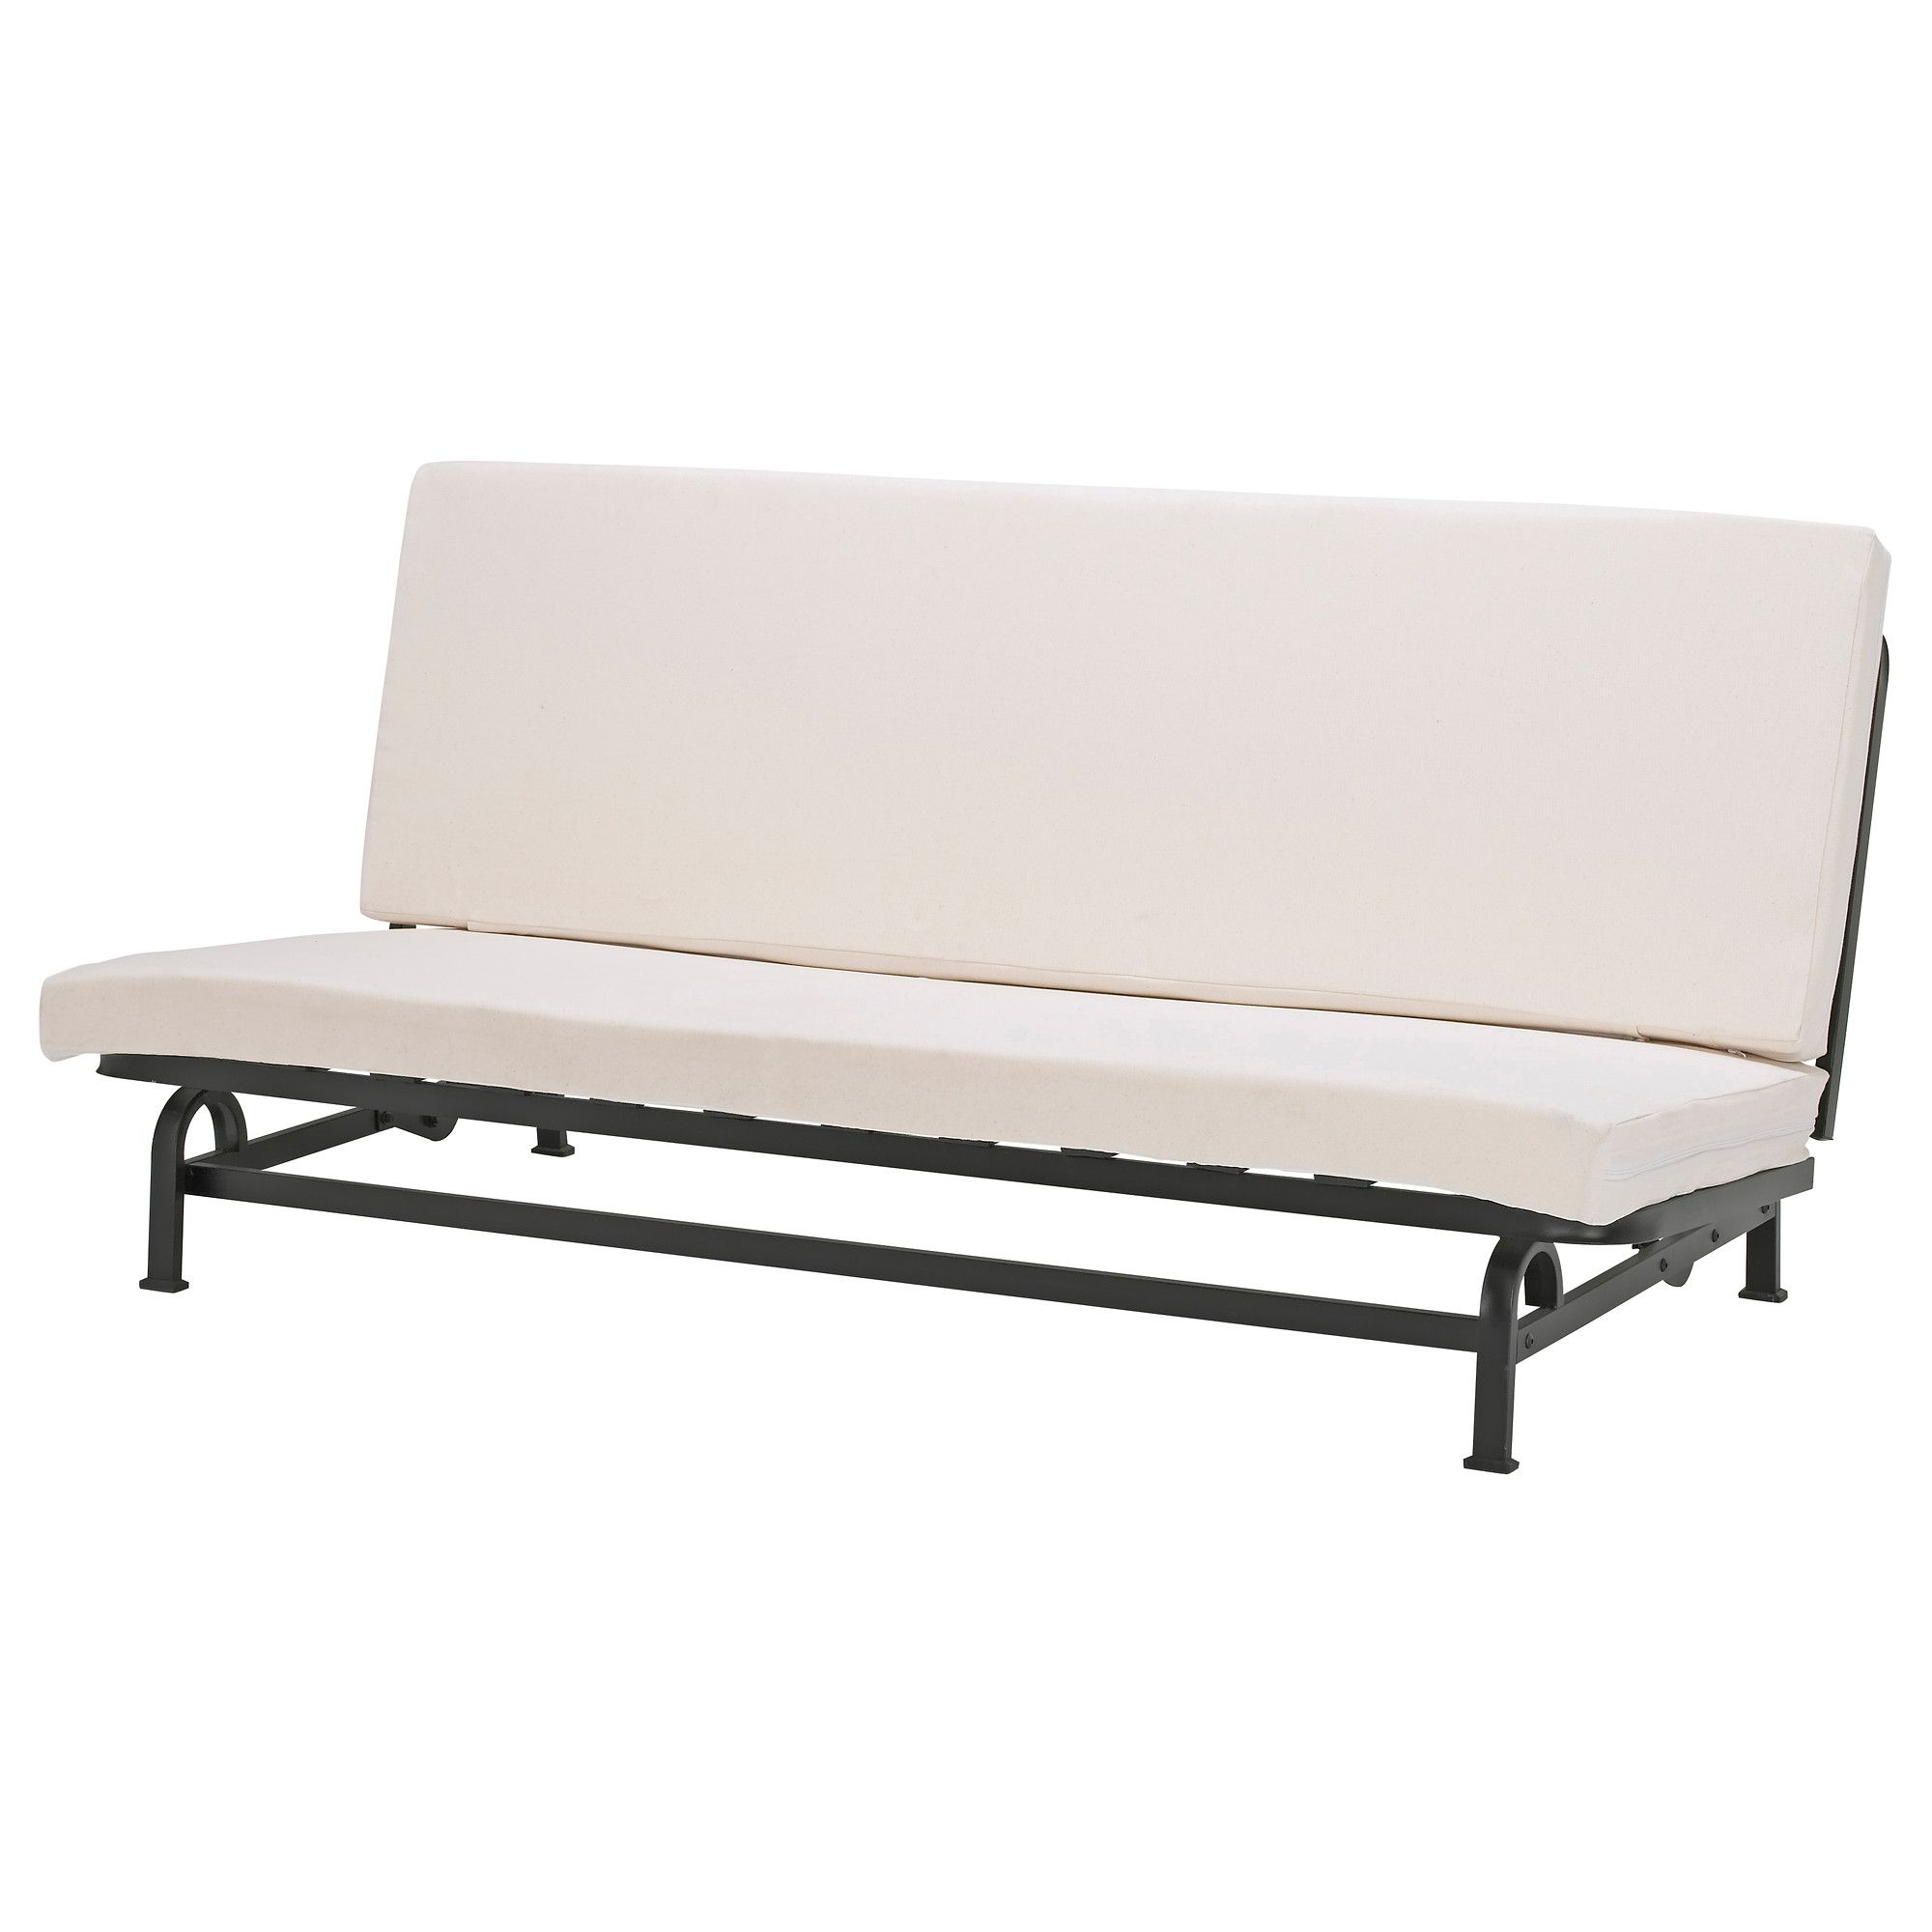 Exarby 3er Bettsofa Ikea 99 Euro The Big Move Sofa Sofa Bed